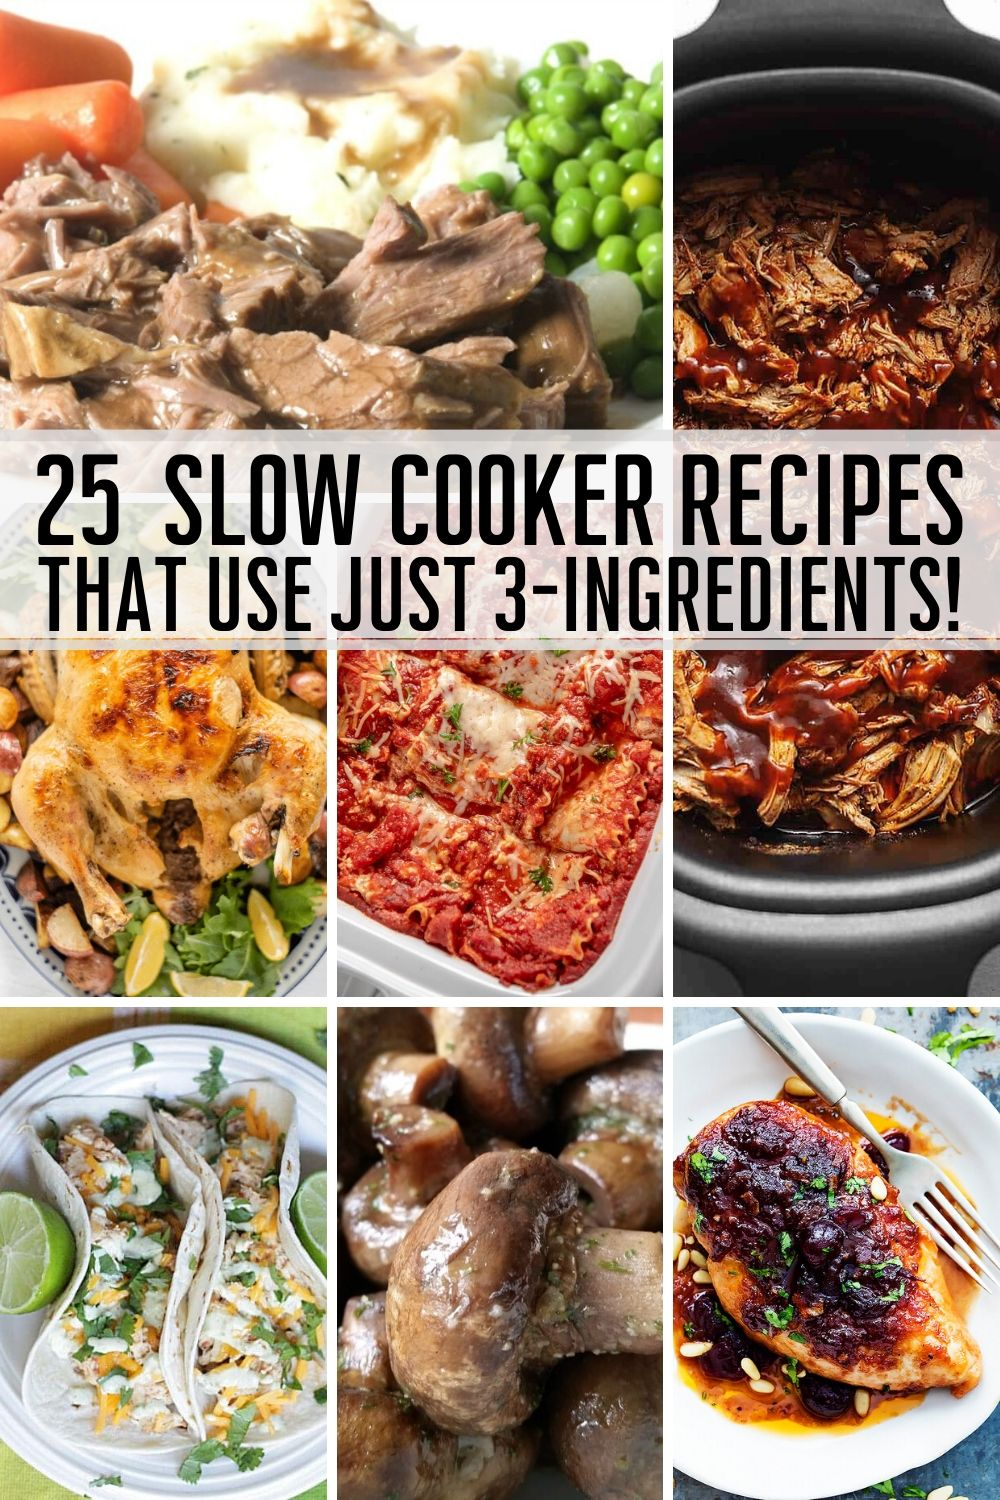 3 Ingredient Slow Cooker Recipes